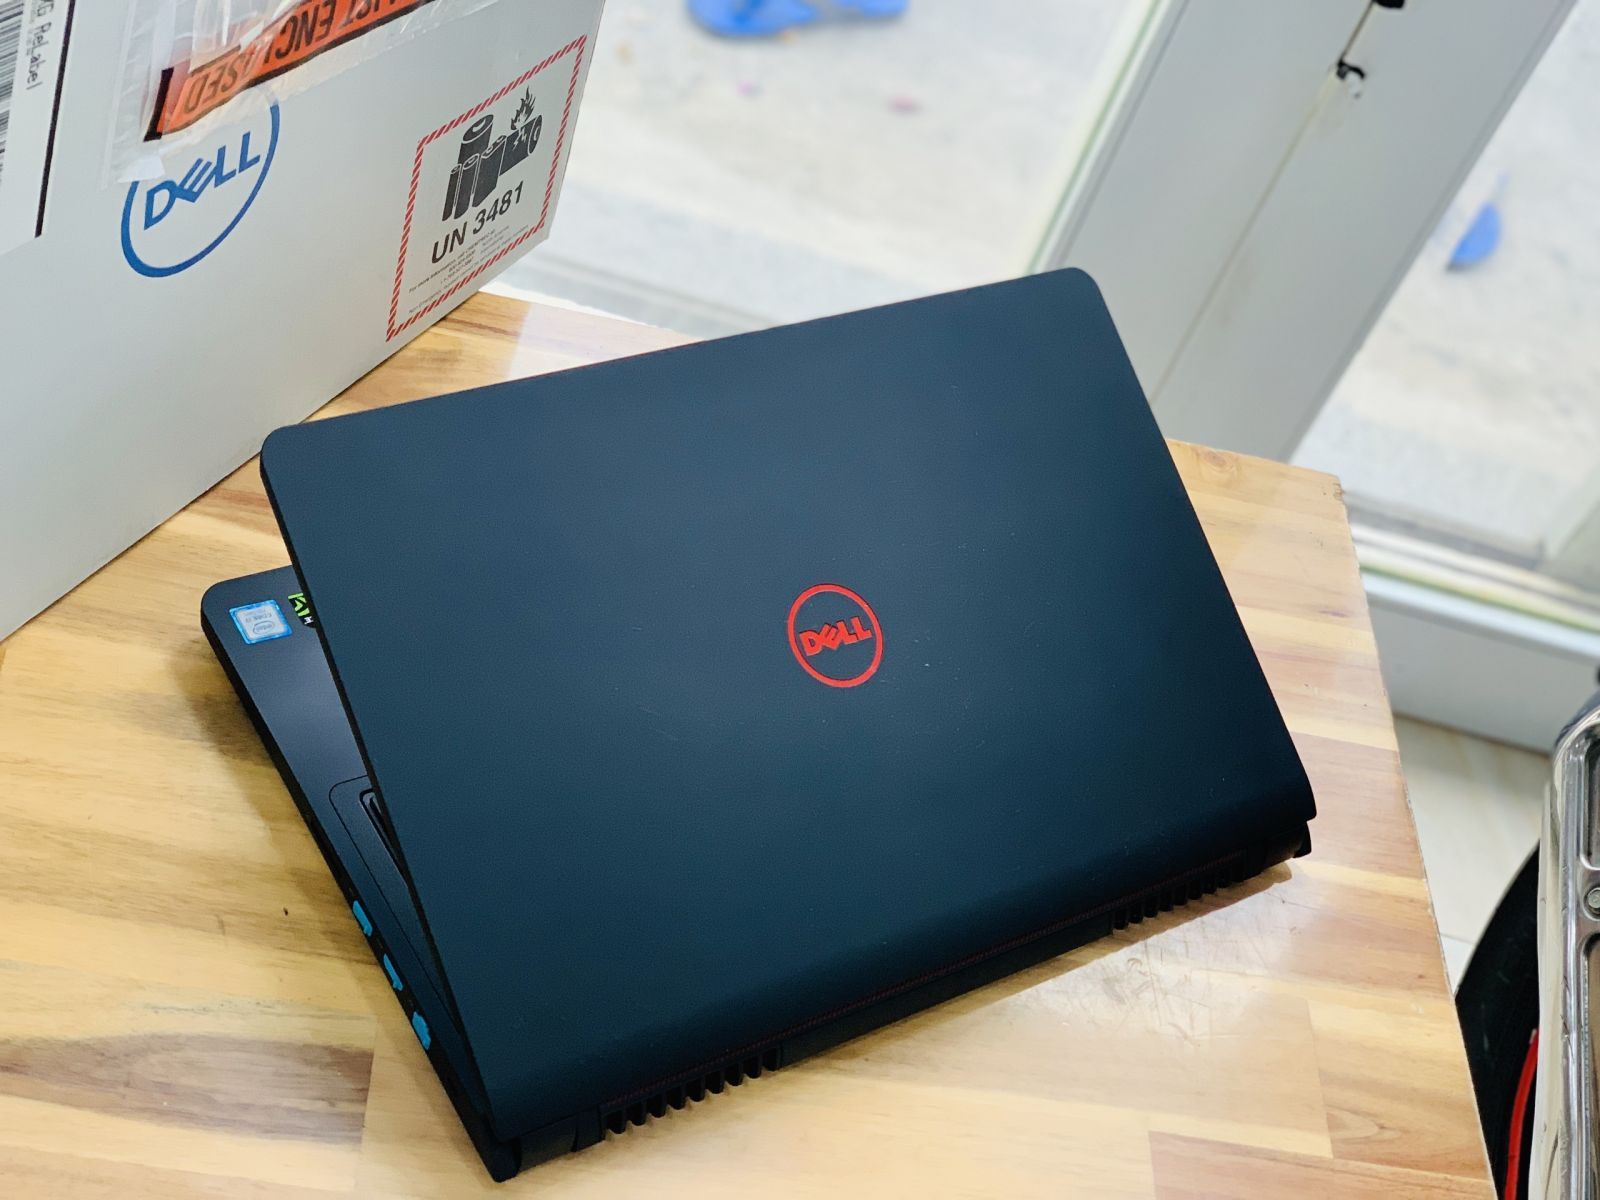 Laptop Dell Gaming 5577, i7 7700HQ 8G SSD128+1T Full HD GTX 1050 4G Full Box New 100% Giá rẻ1